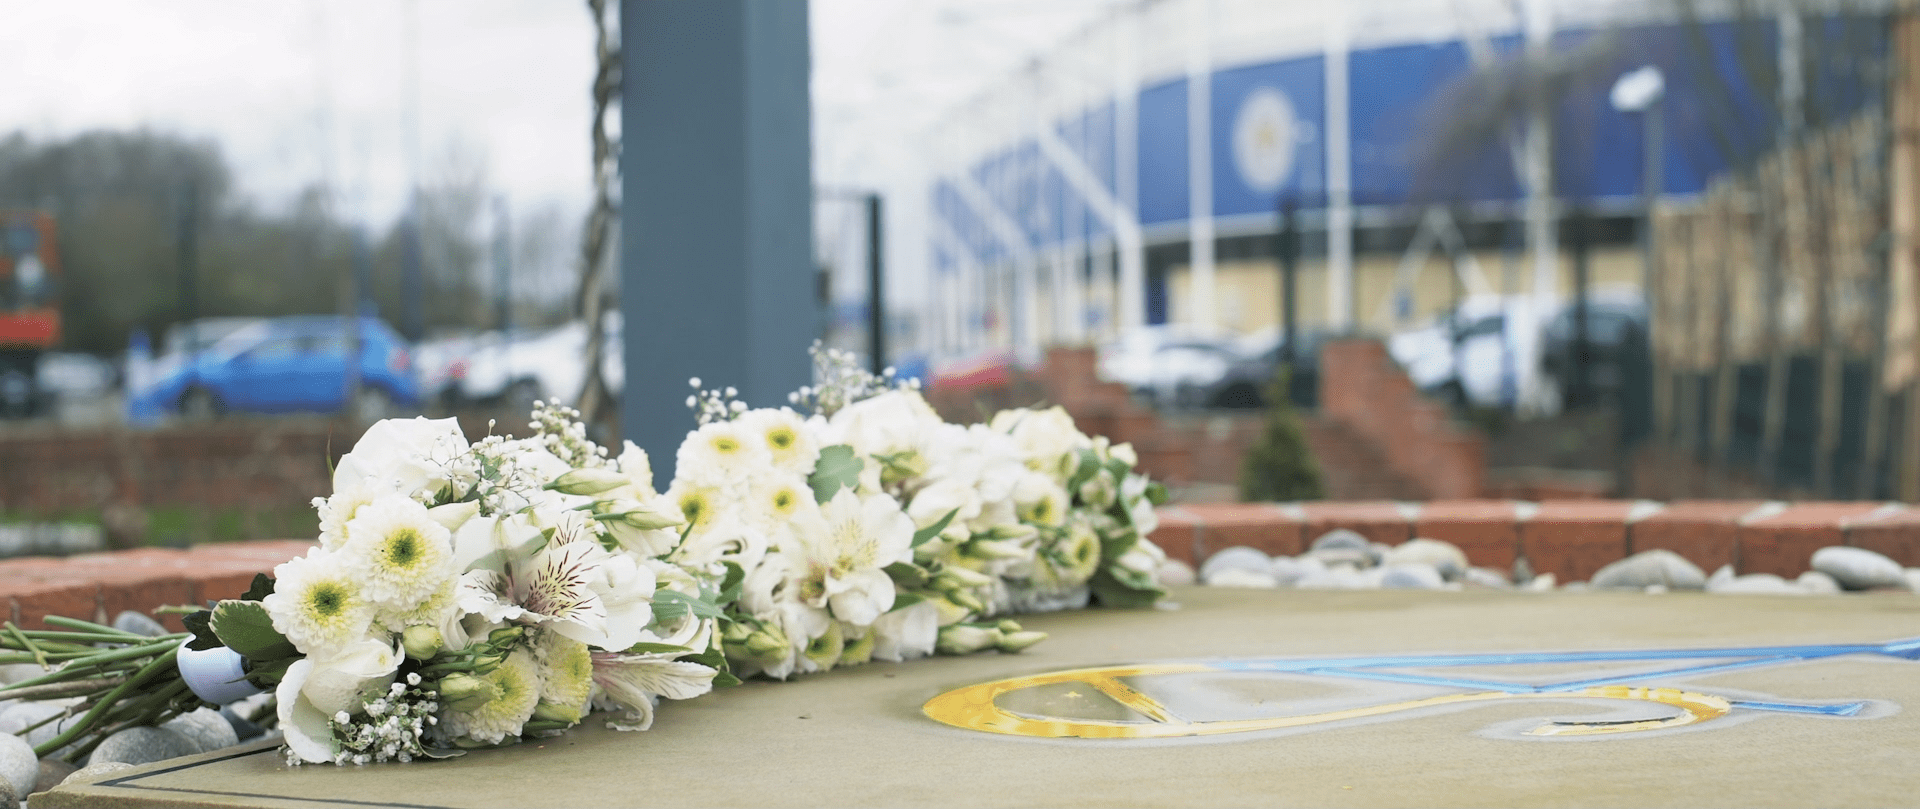 Flowers laid on the floor outside Leicester City Football Stadium.